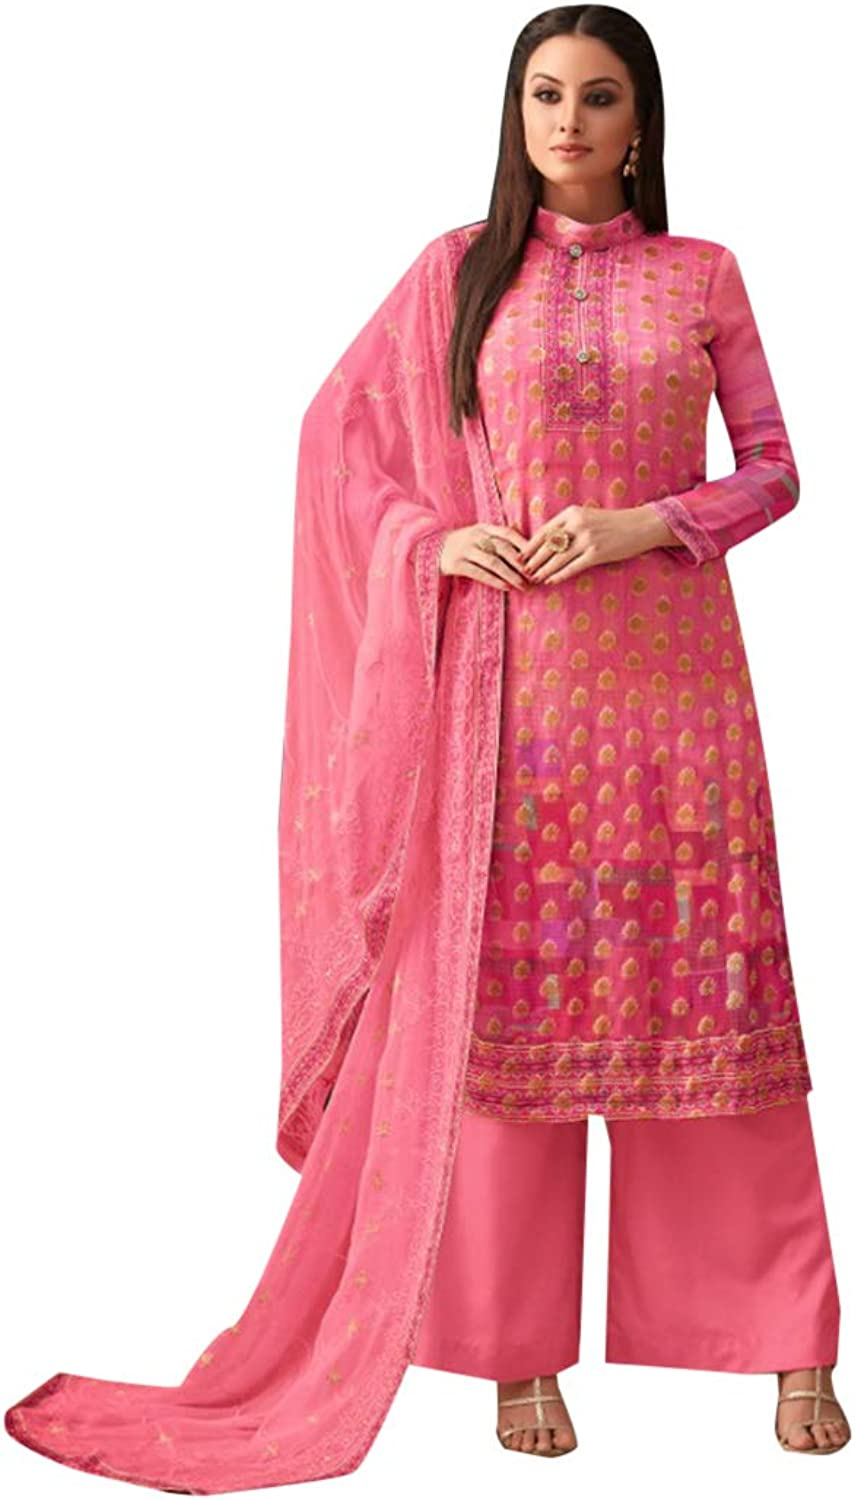 Festive Straight Pink Salwar Kameez Bright Suit Palazzo Style Indian Ethnic Wear 7397